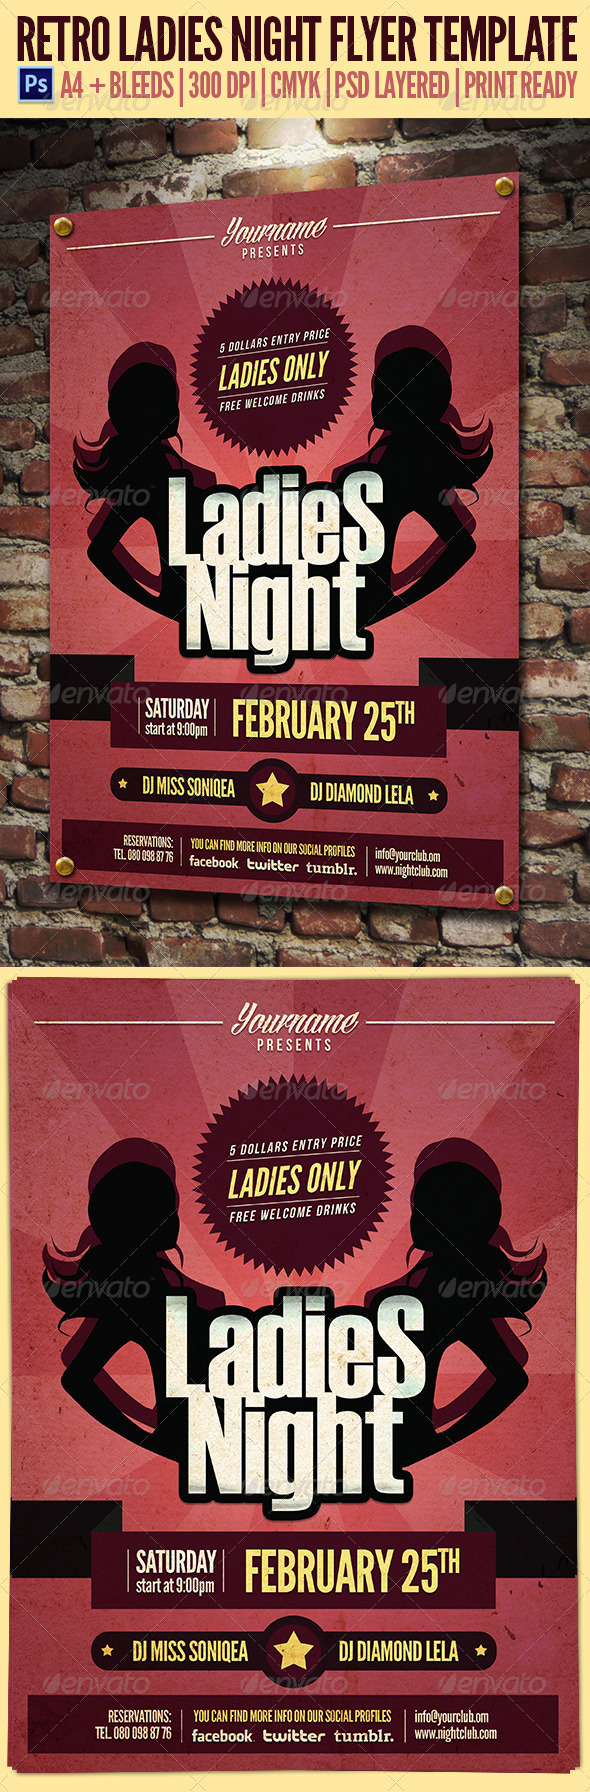 Retro Ladies Night Flyer Template